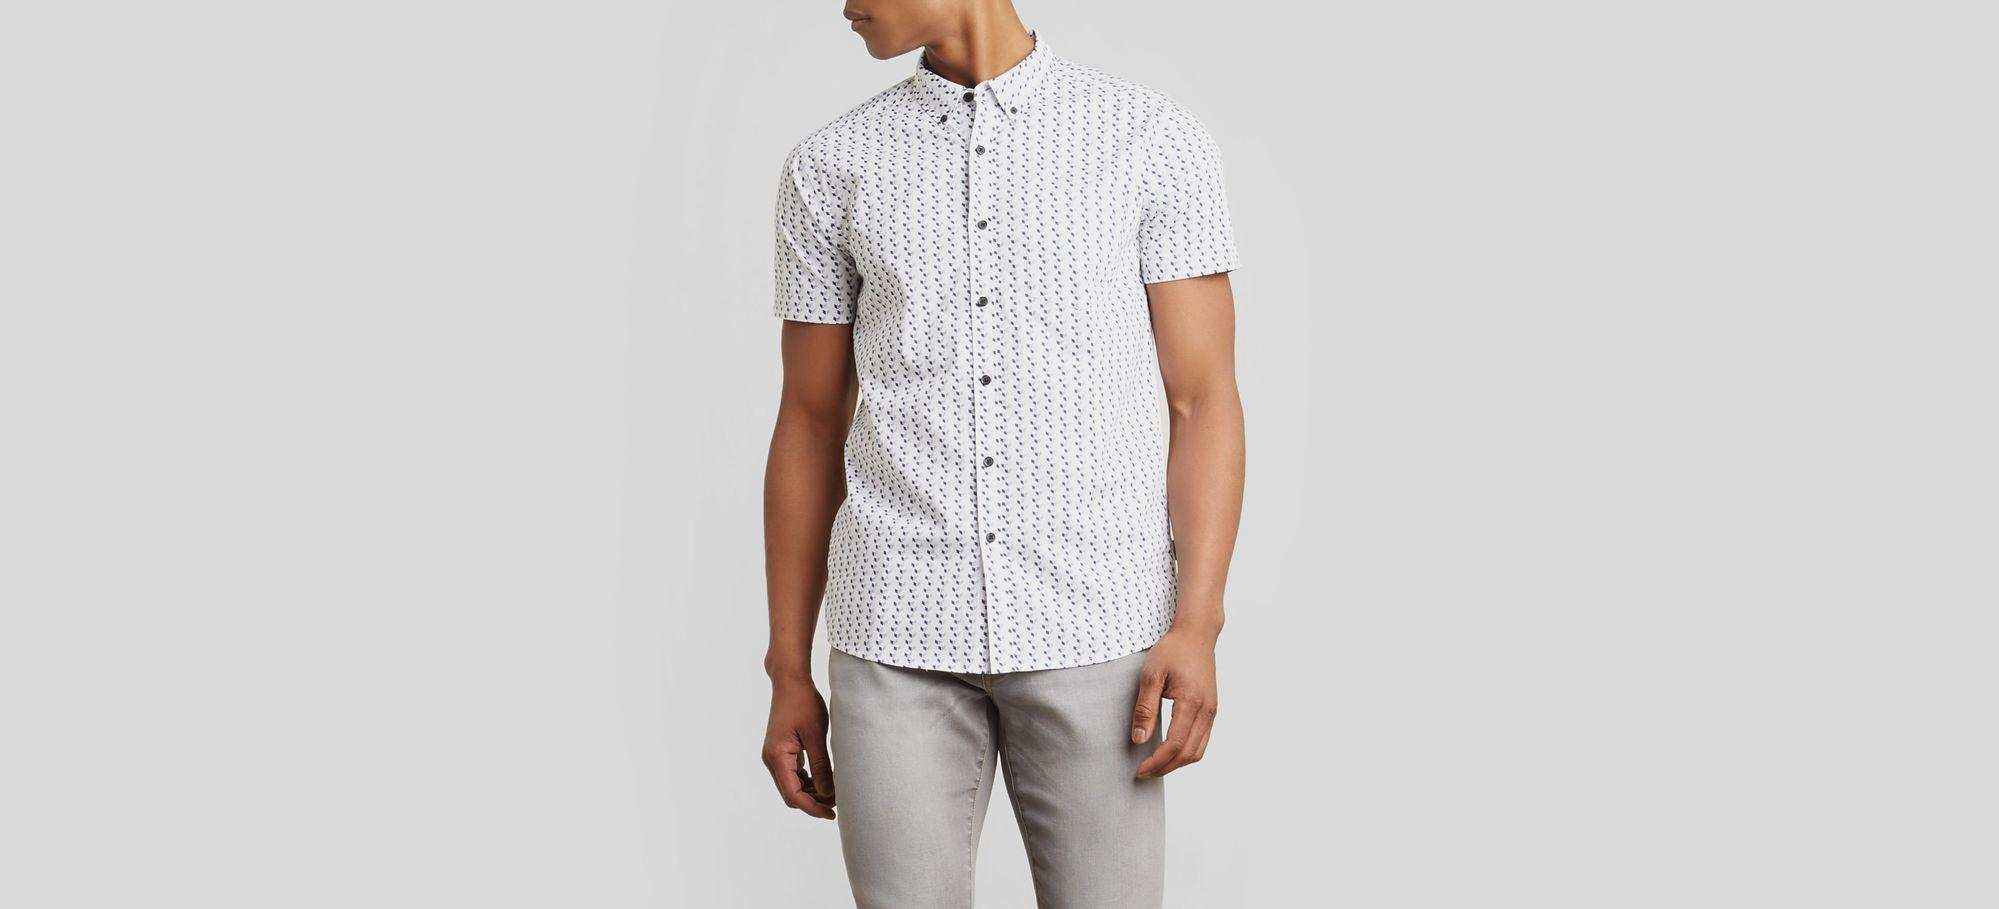 Short-Sleeve Wave Print Shirt Kenneth Cole Reaction Discount Purchase Nicekicks For Sale Shop Cheap Online Discount Authentic Discount Choice hZgztWjbe